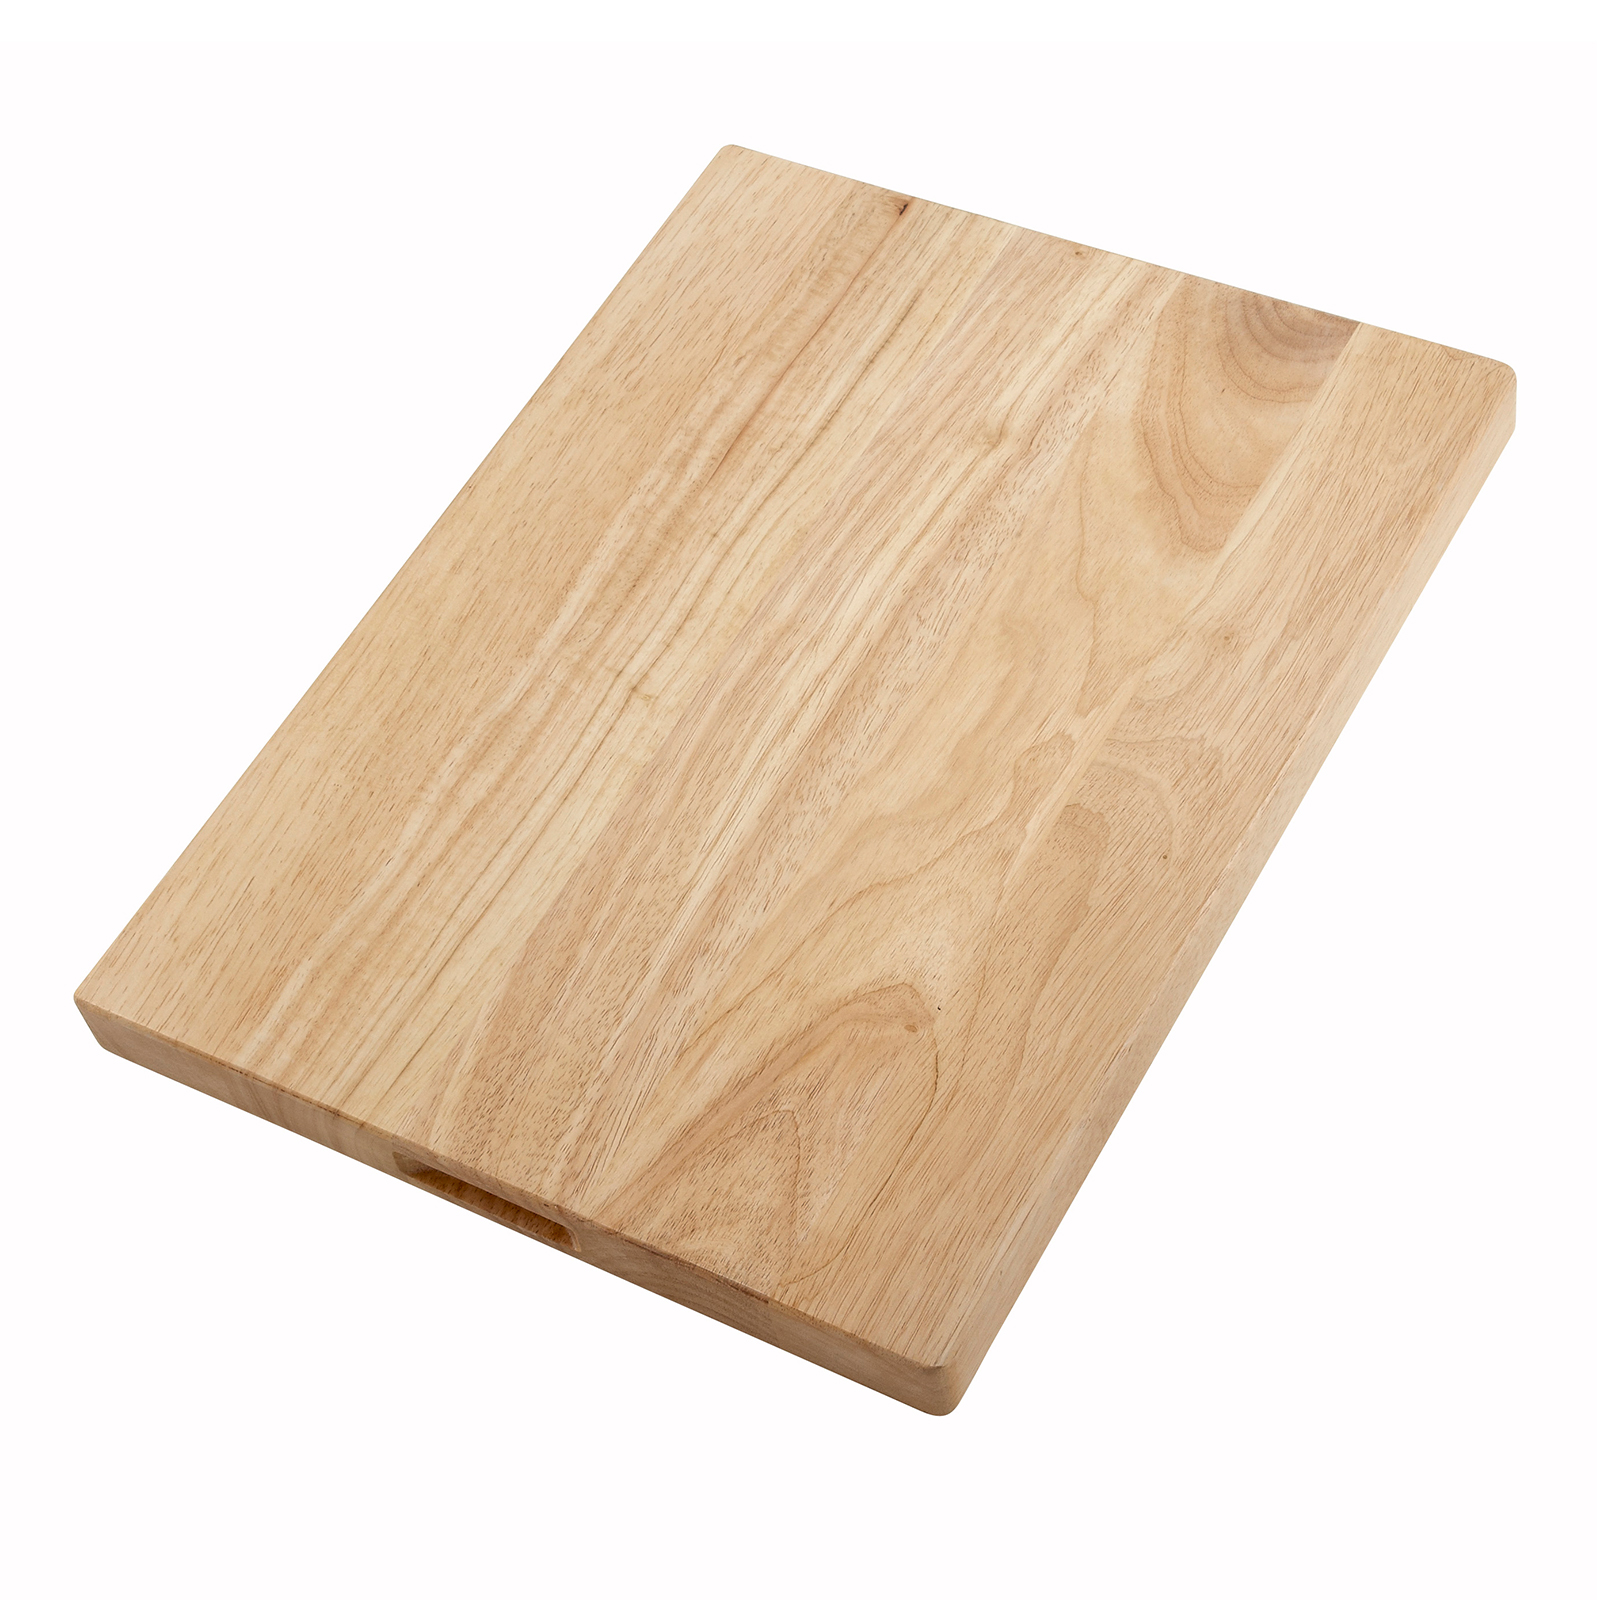 Winco WCB-1824 cutting board, wood